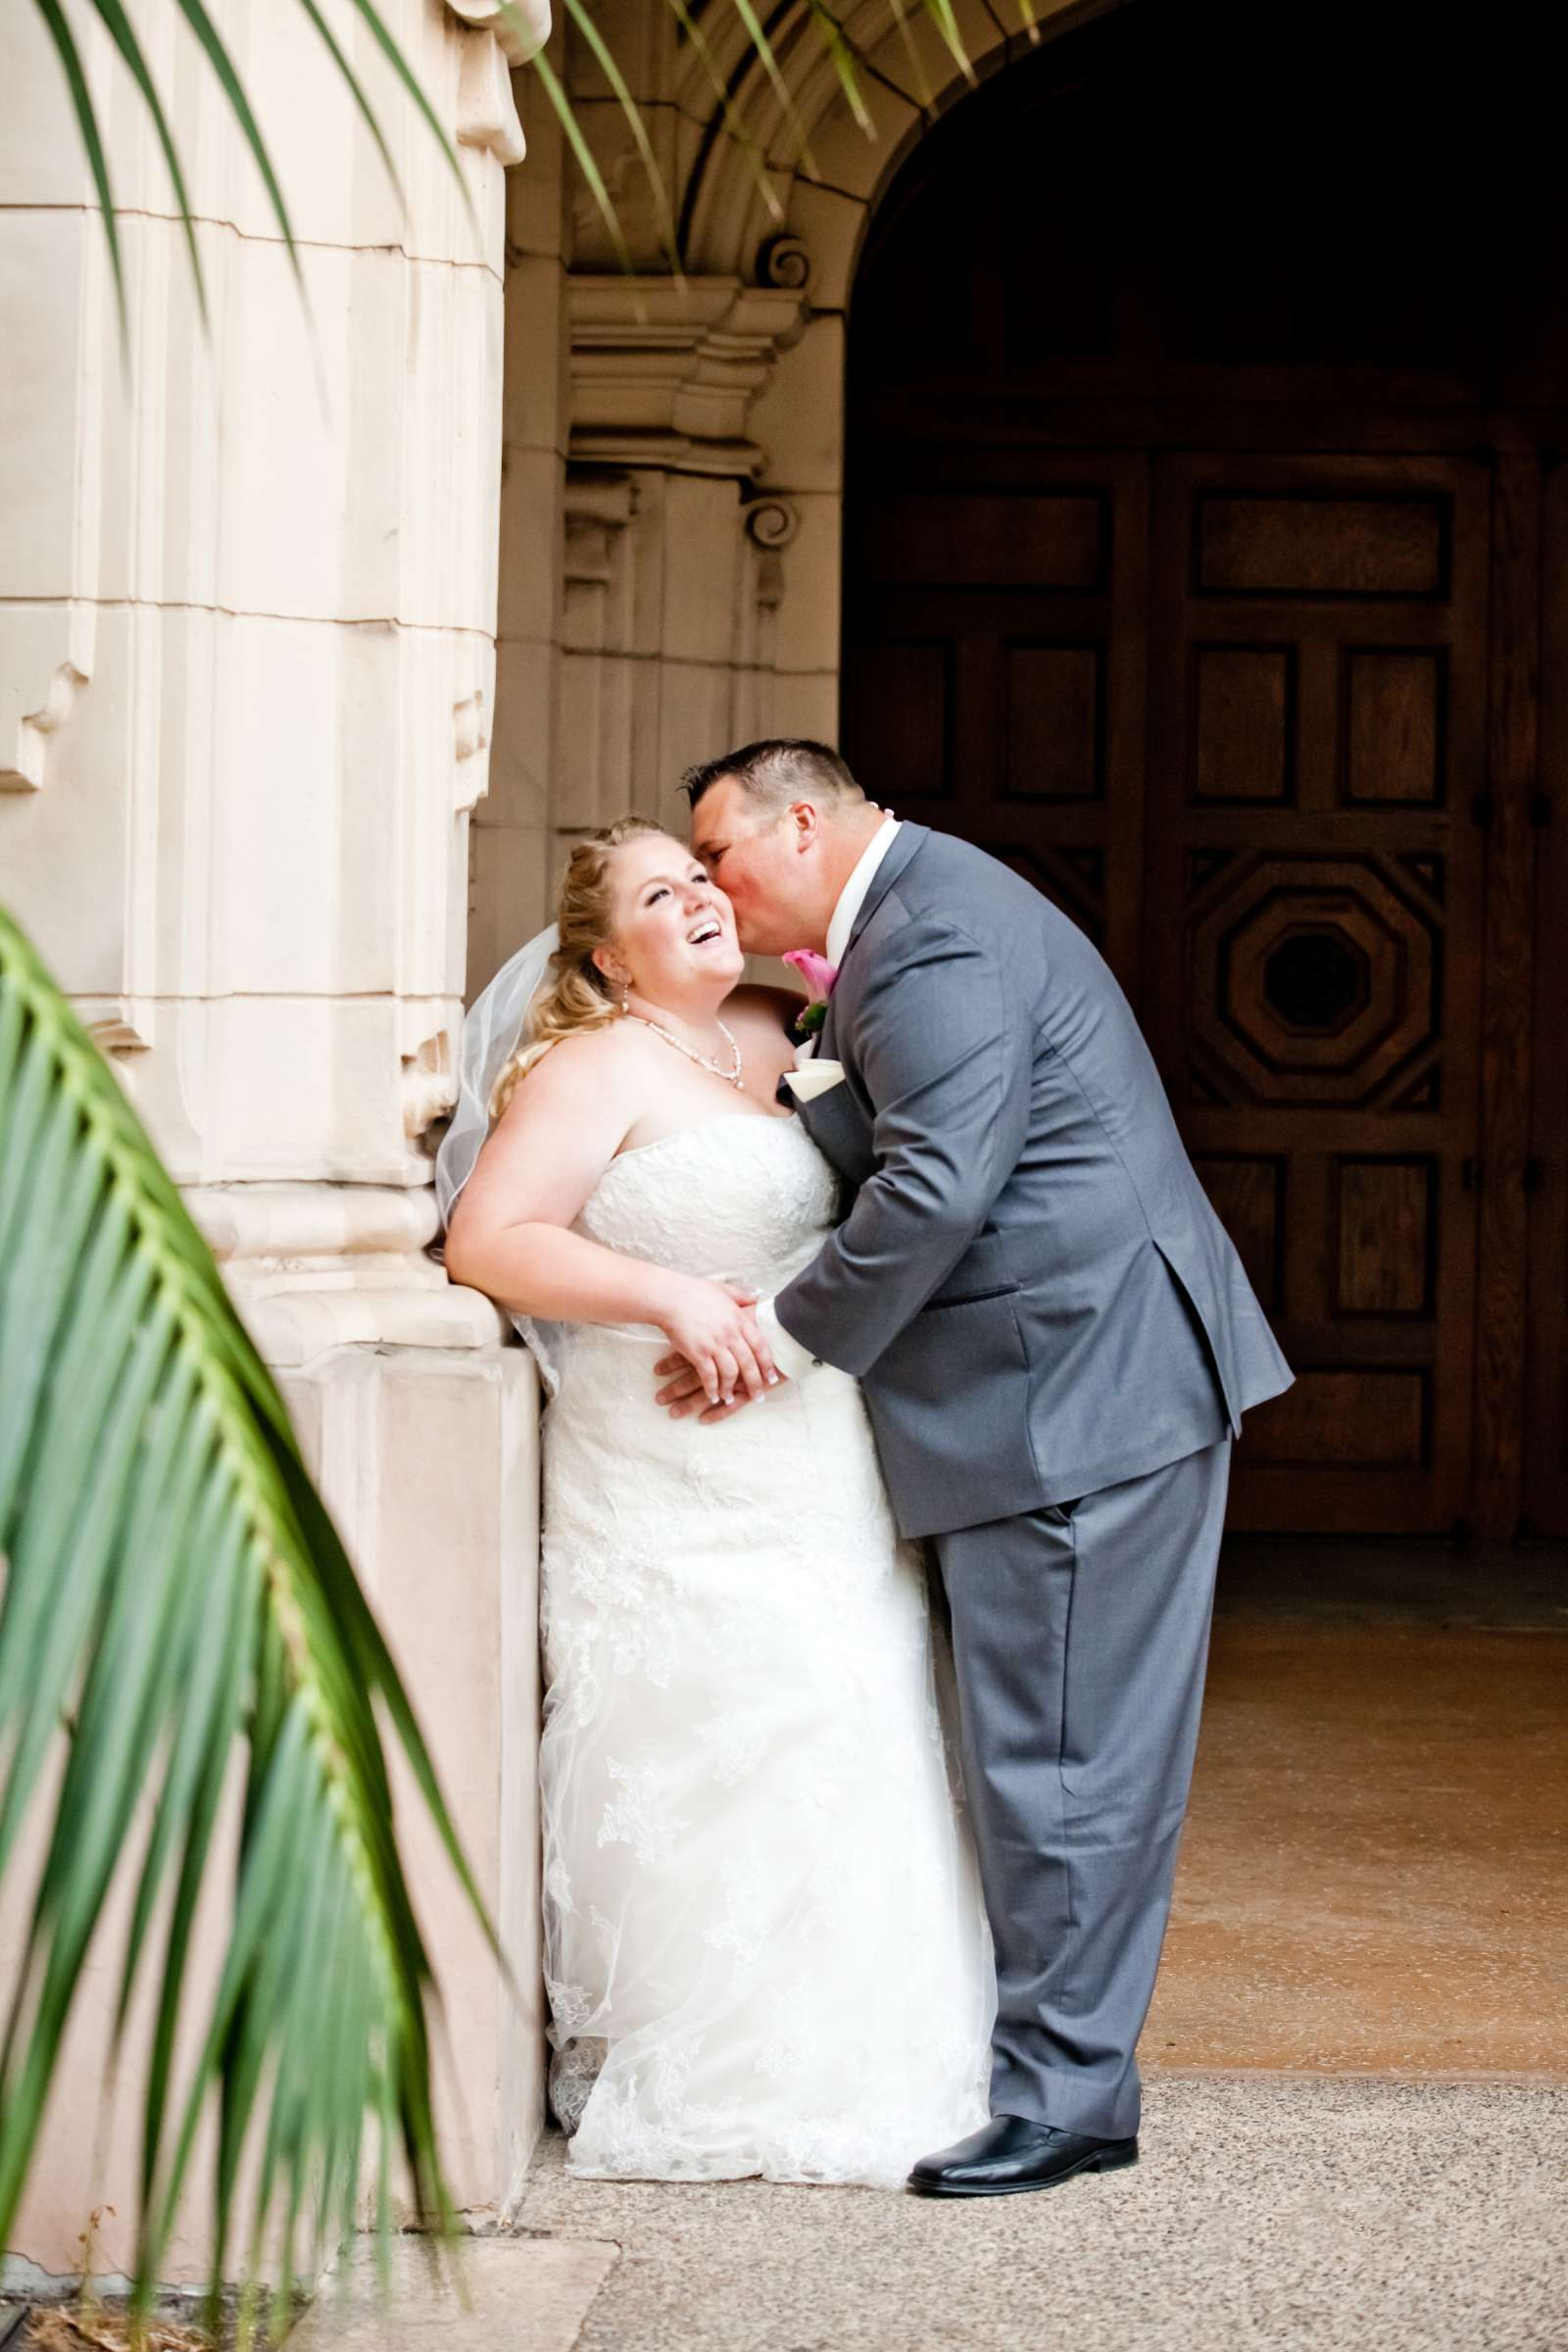 The Prado Wedding coordinated by Monarch Weddings, Eileen and Robbie Wedding Photo #18 by True Photography